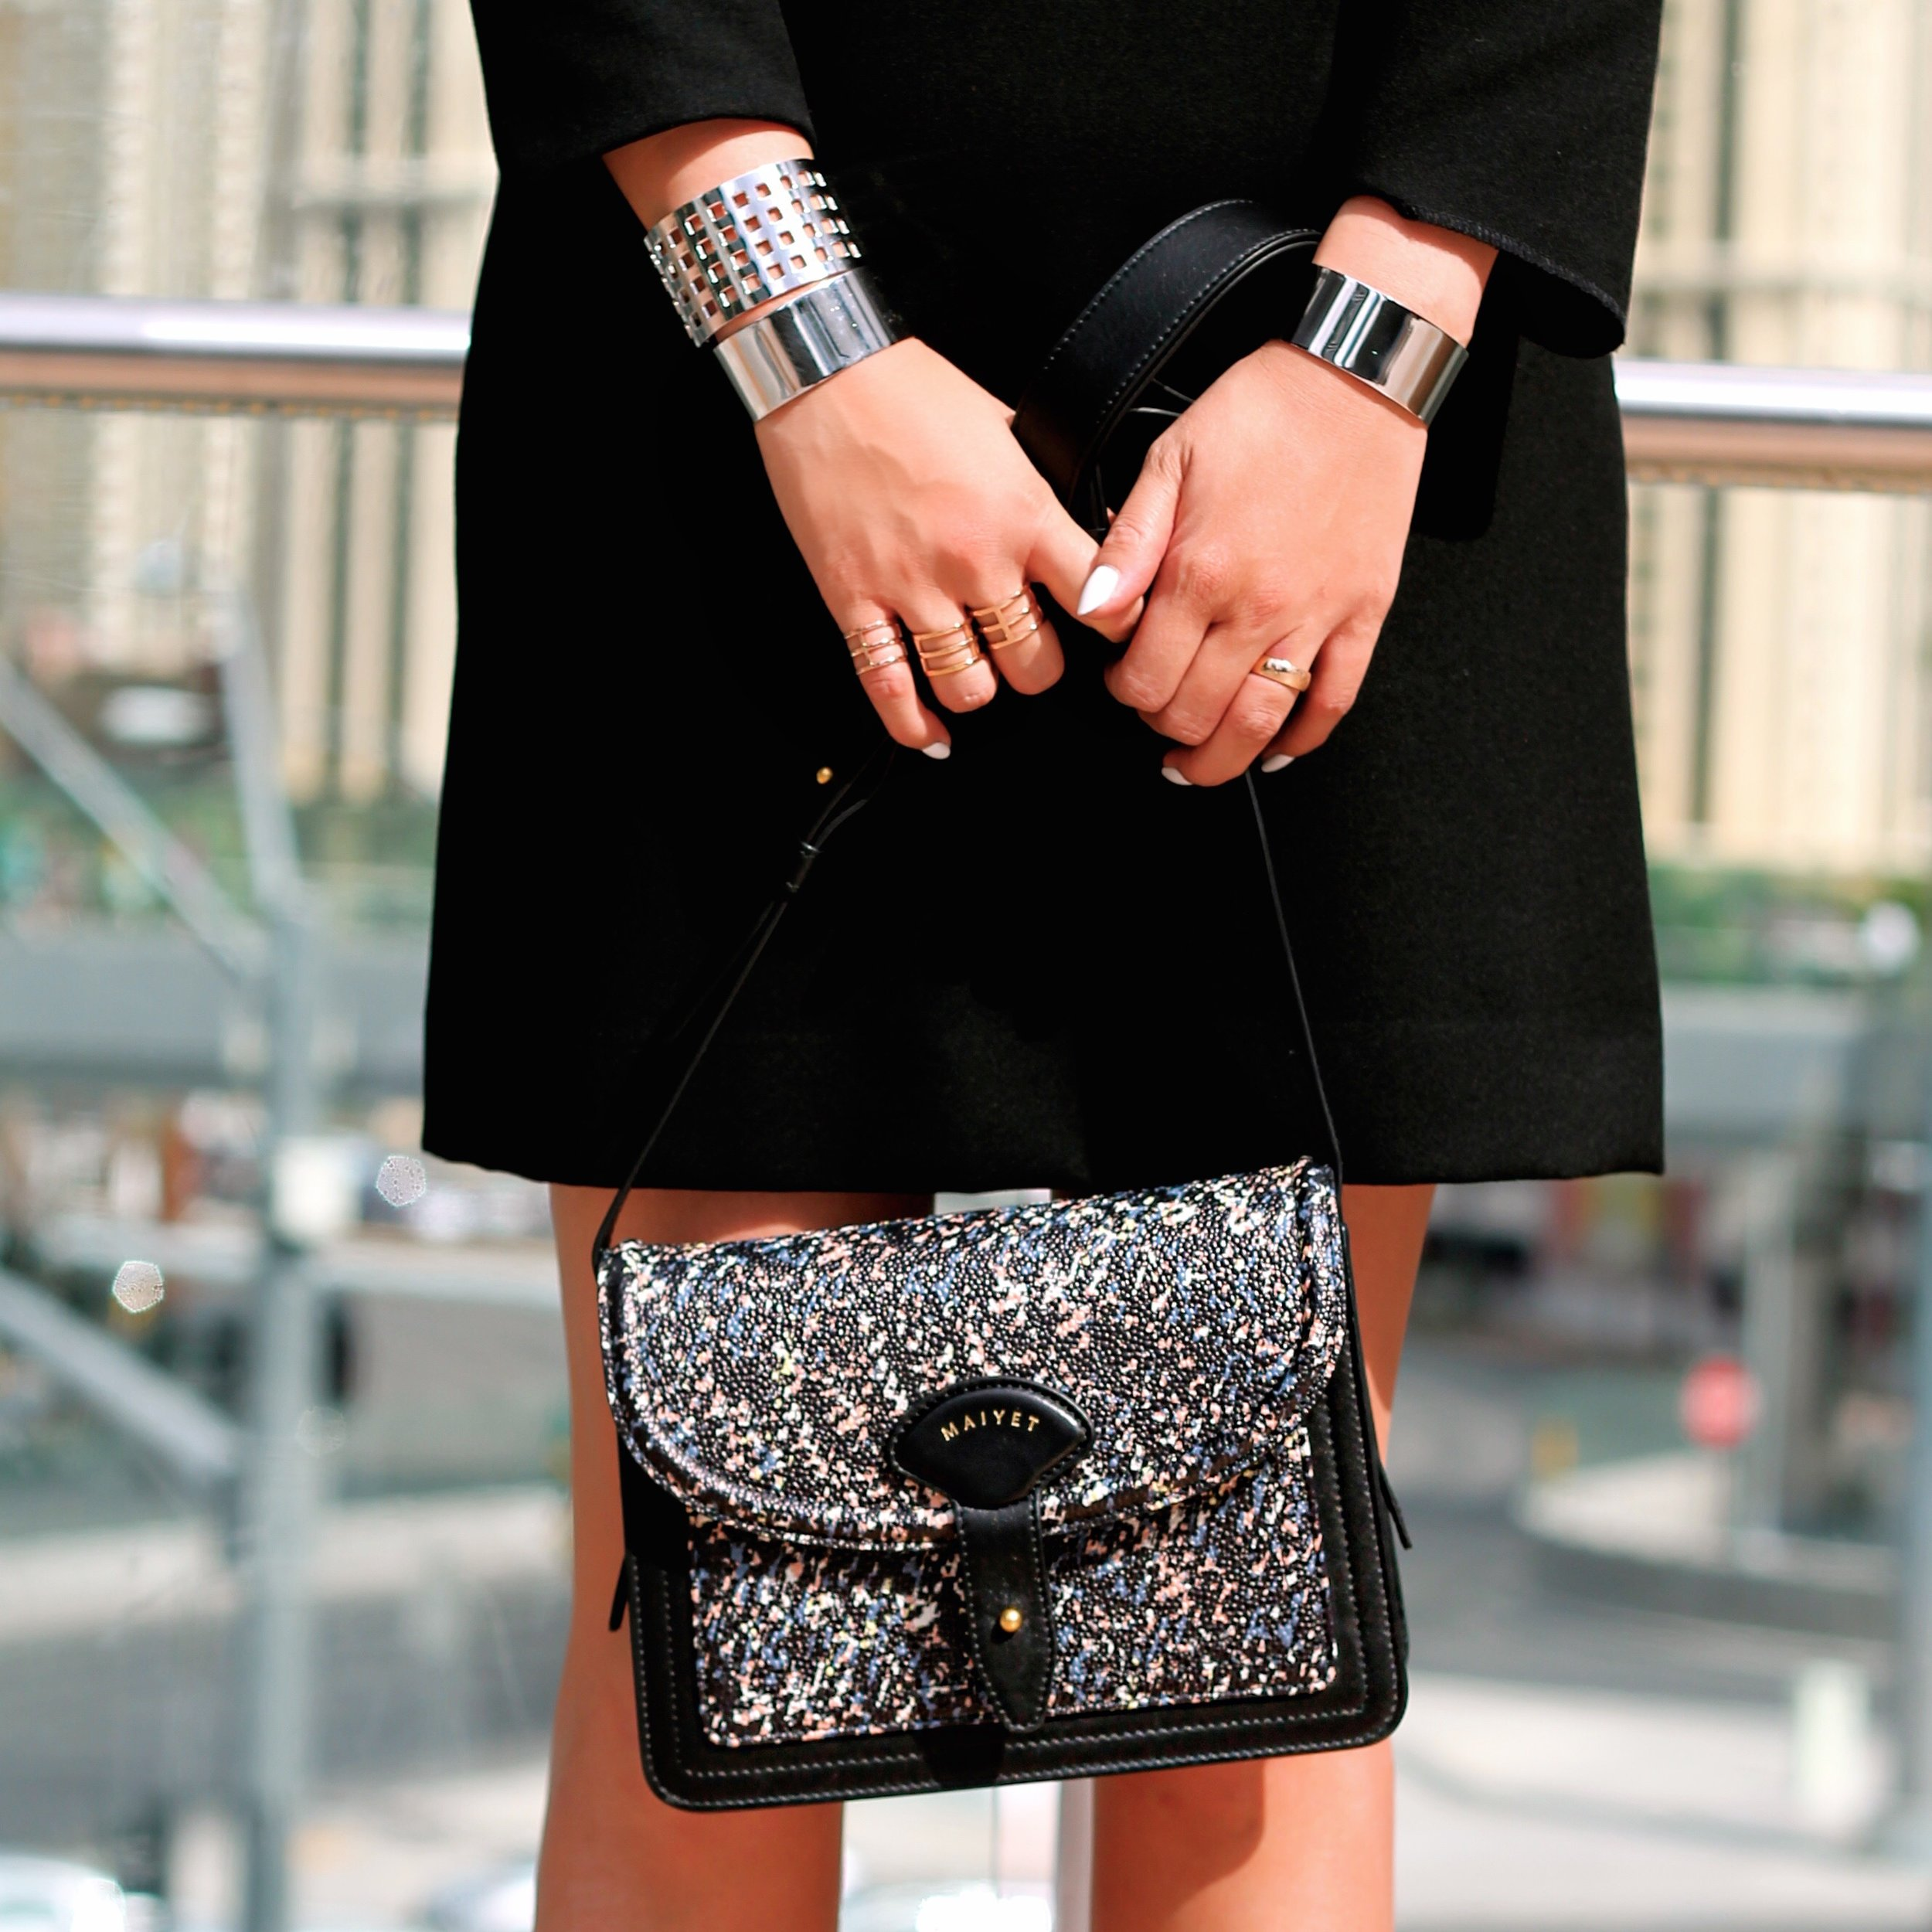 bag c/o Maiyet, Svelte Metals cuffs and rings